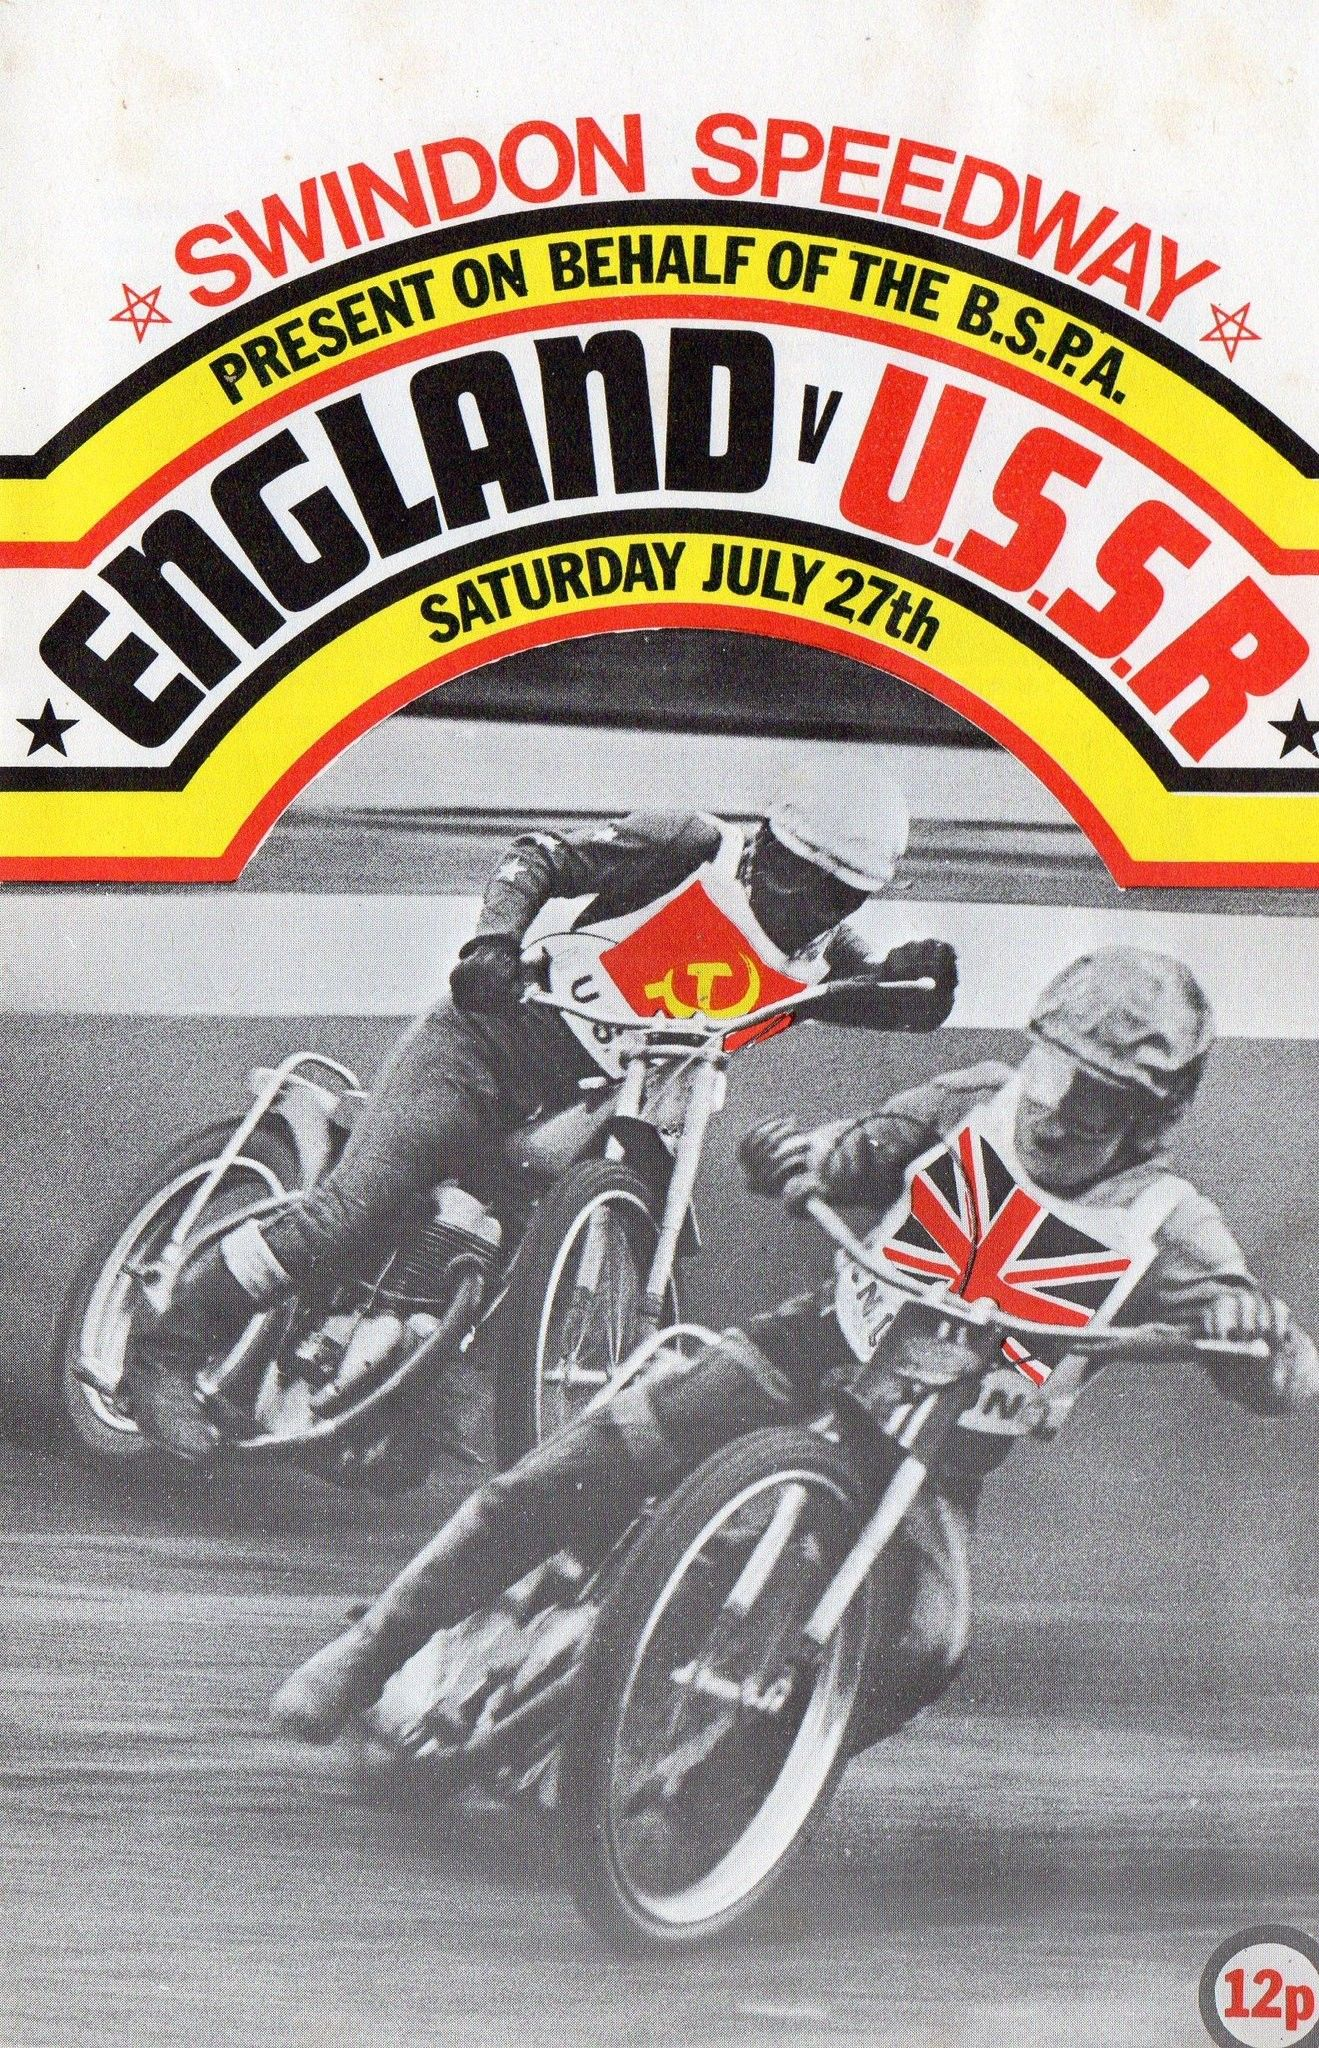 Pin by Rick Pfadt on Speedway Racing (With images